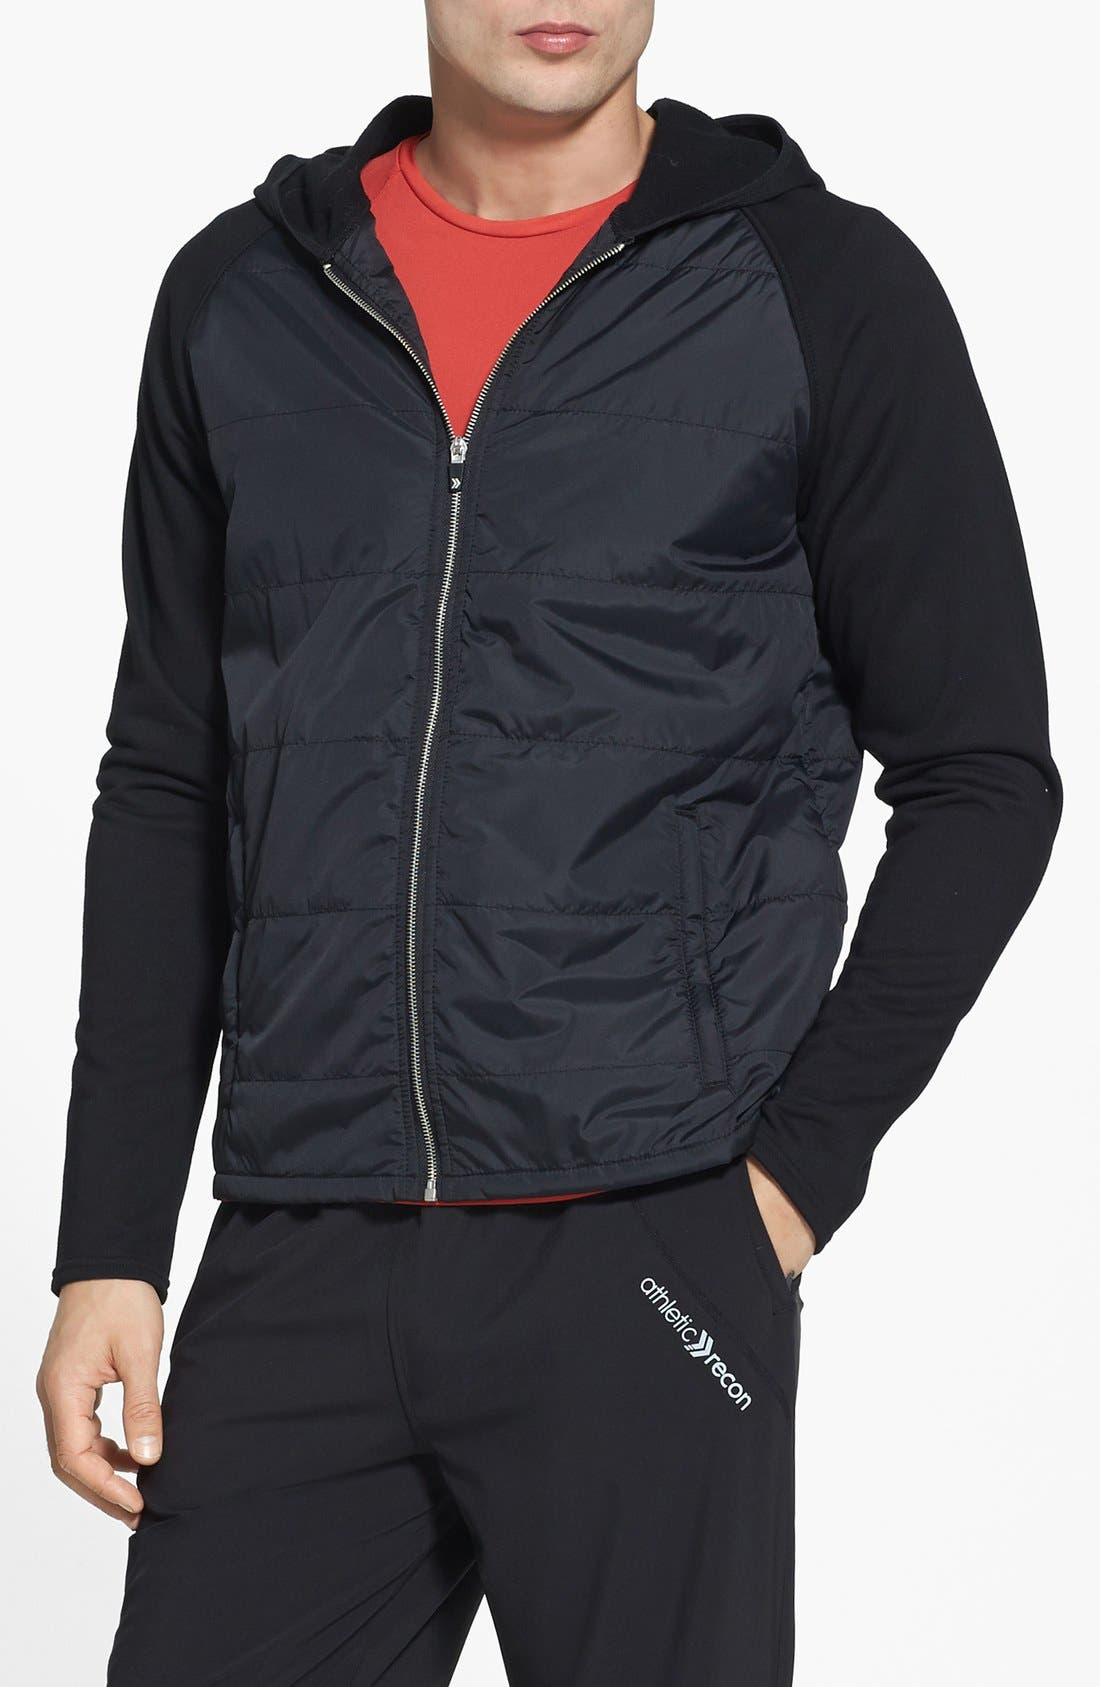 Alternate Image 1 Selected - Athletic Recon Jacket & Pants